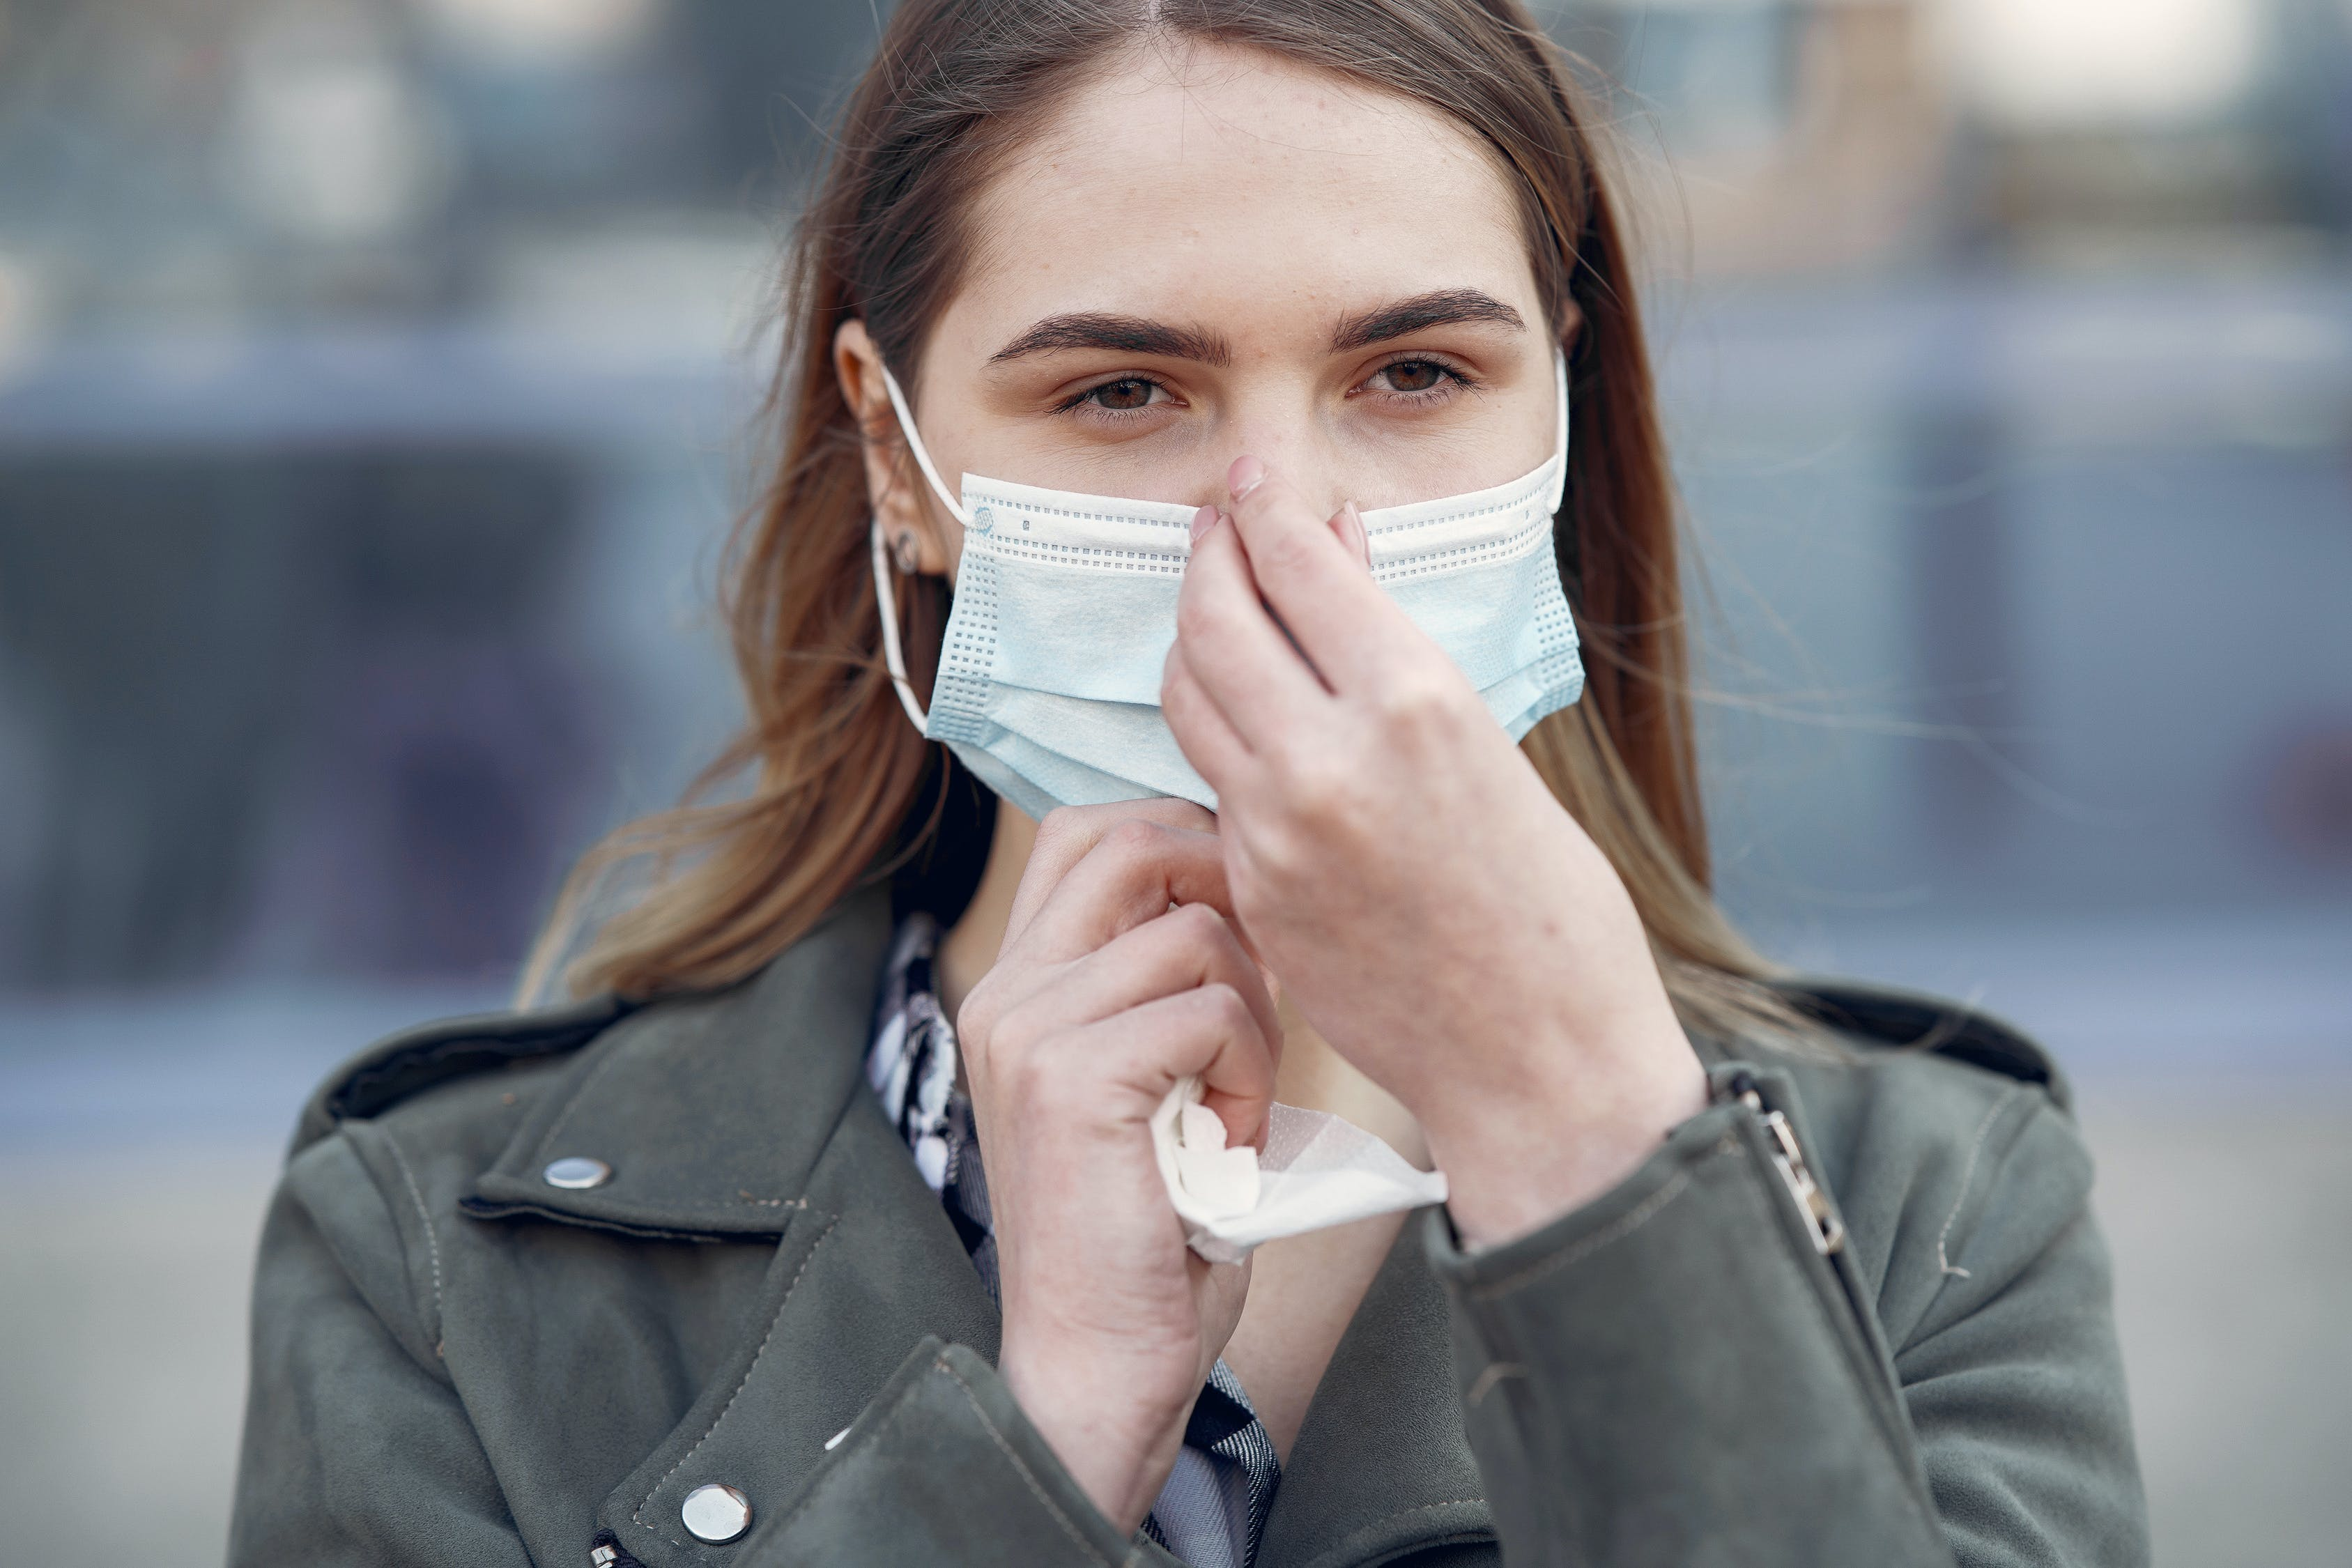 woman wearing non surgical face mask pinching bridge of nose to secure